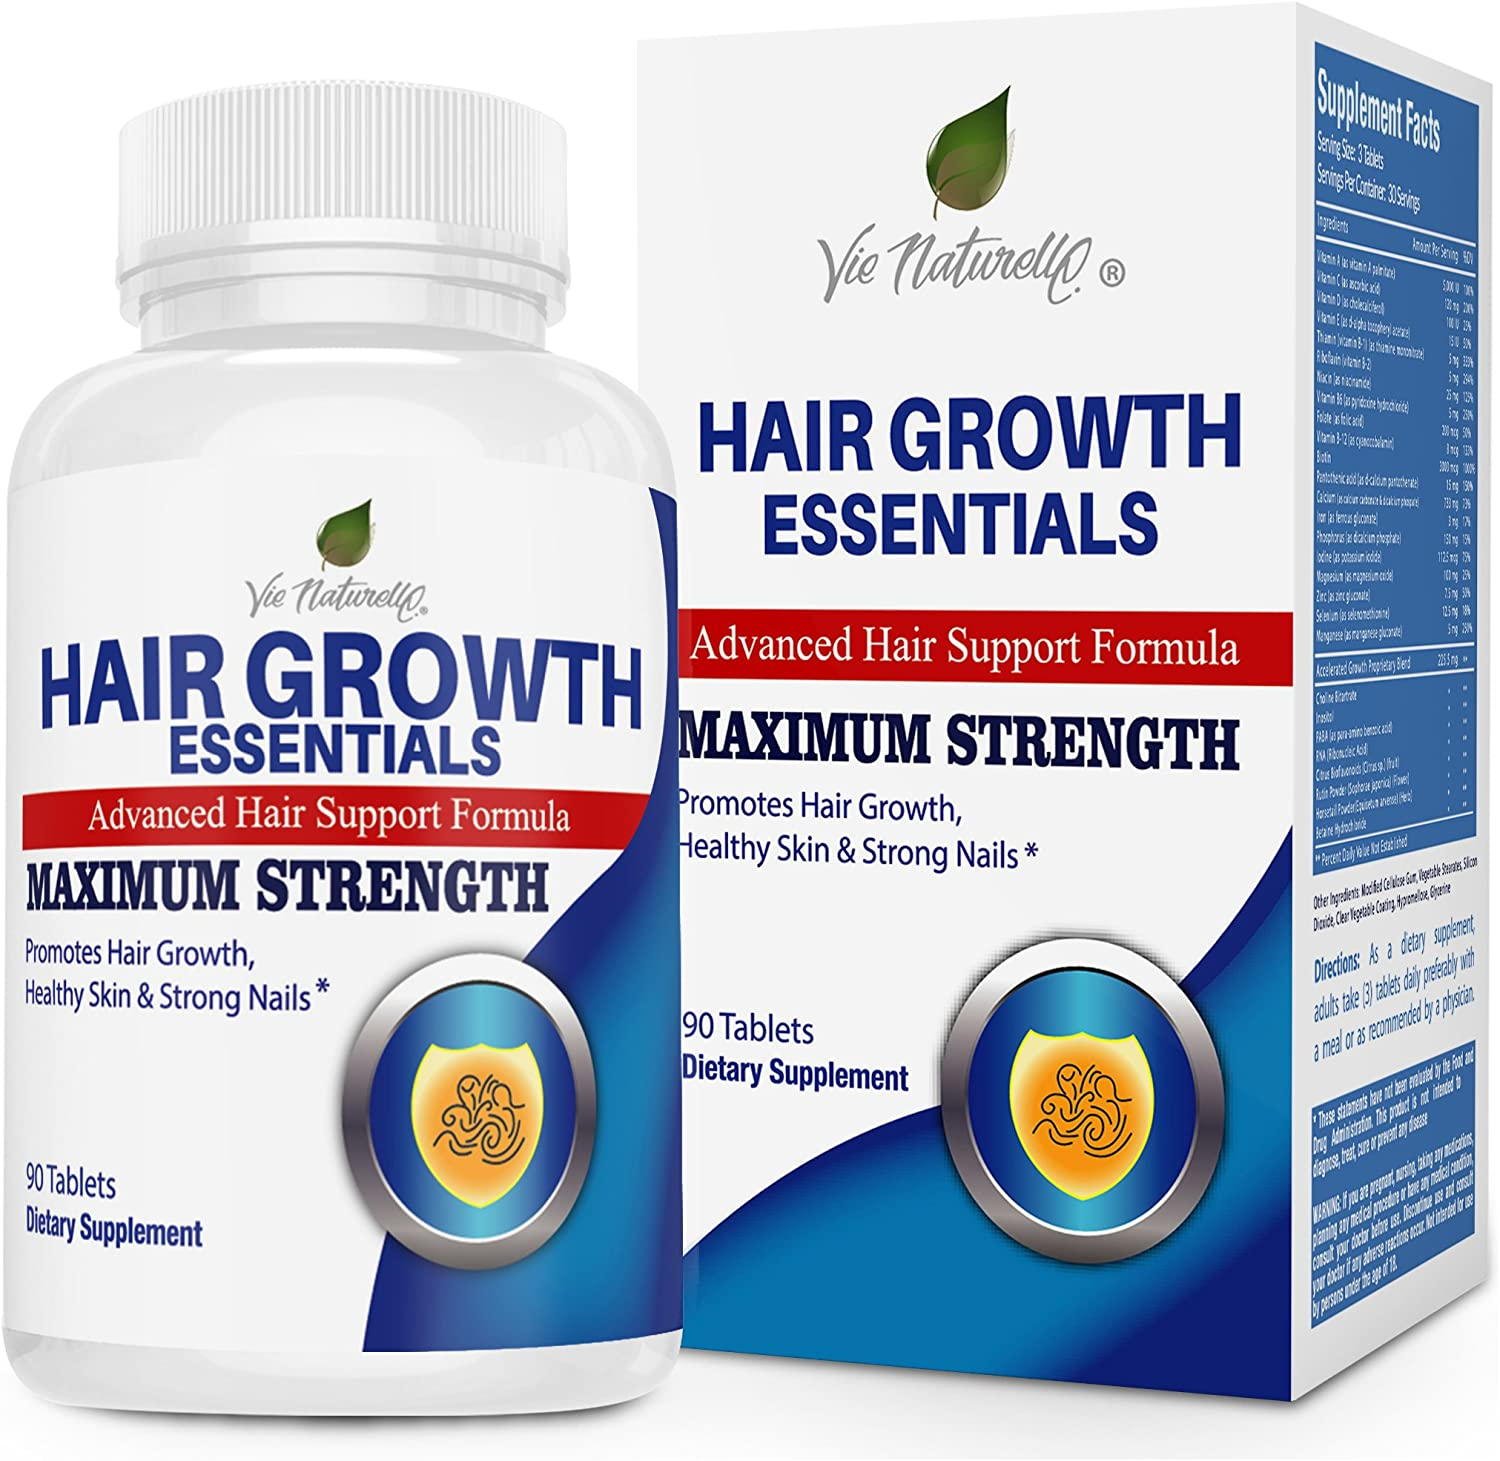 Amazon.com: Hair Vitamins for Faster Hair Growth - Advanced Hair Growth  Essentials Supplement for Hair Loss - 29 Powerful Hair Growth Vitamins &  Nutrients for Rapid Growth for Men and Women 1